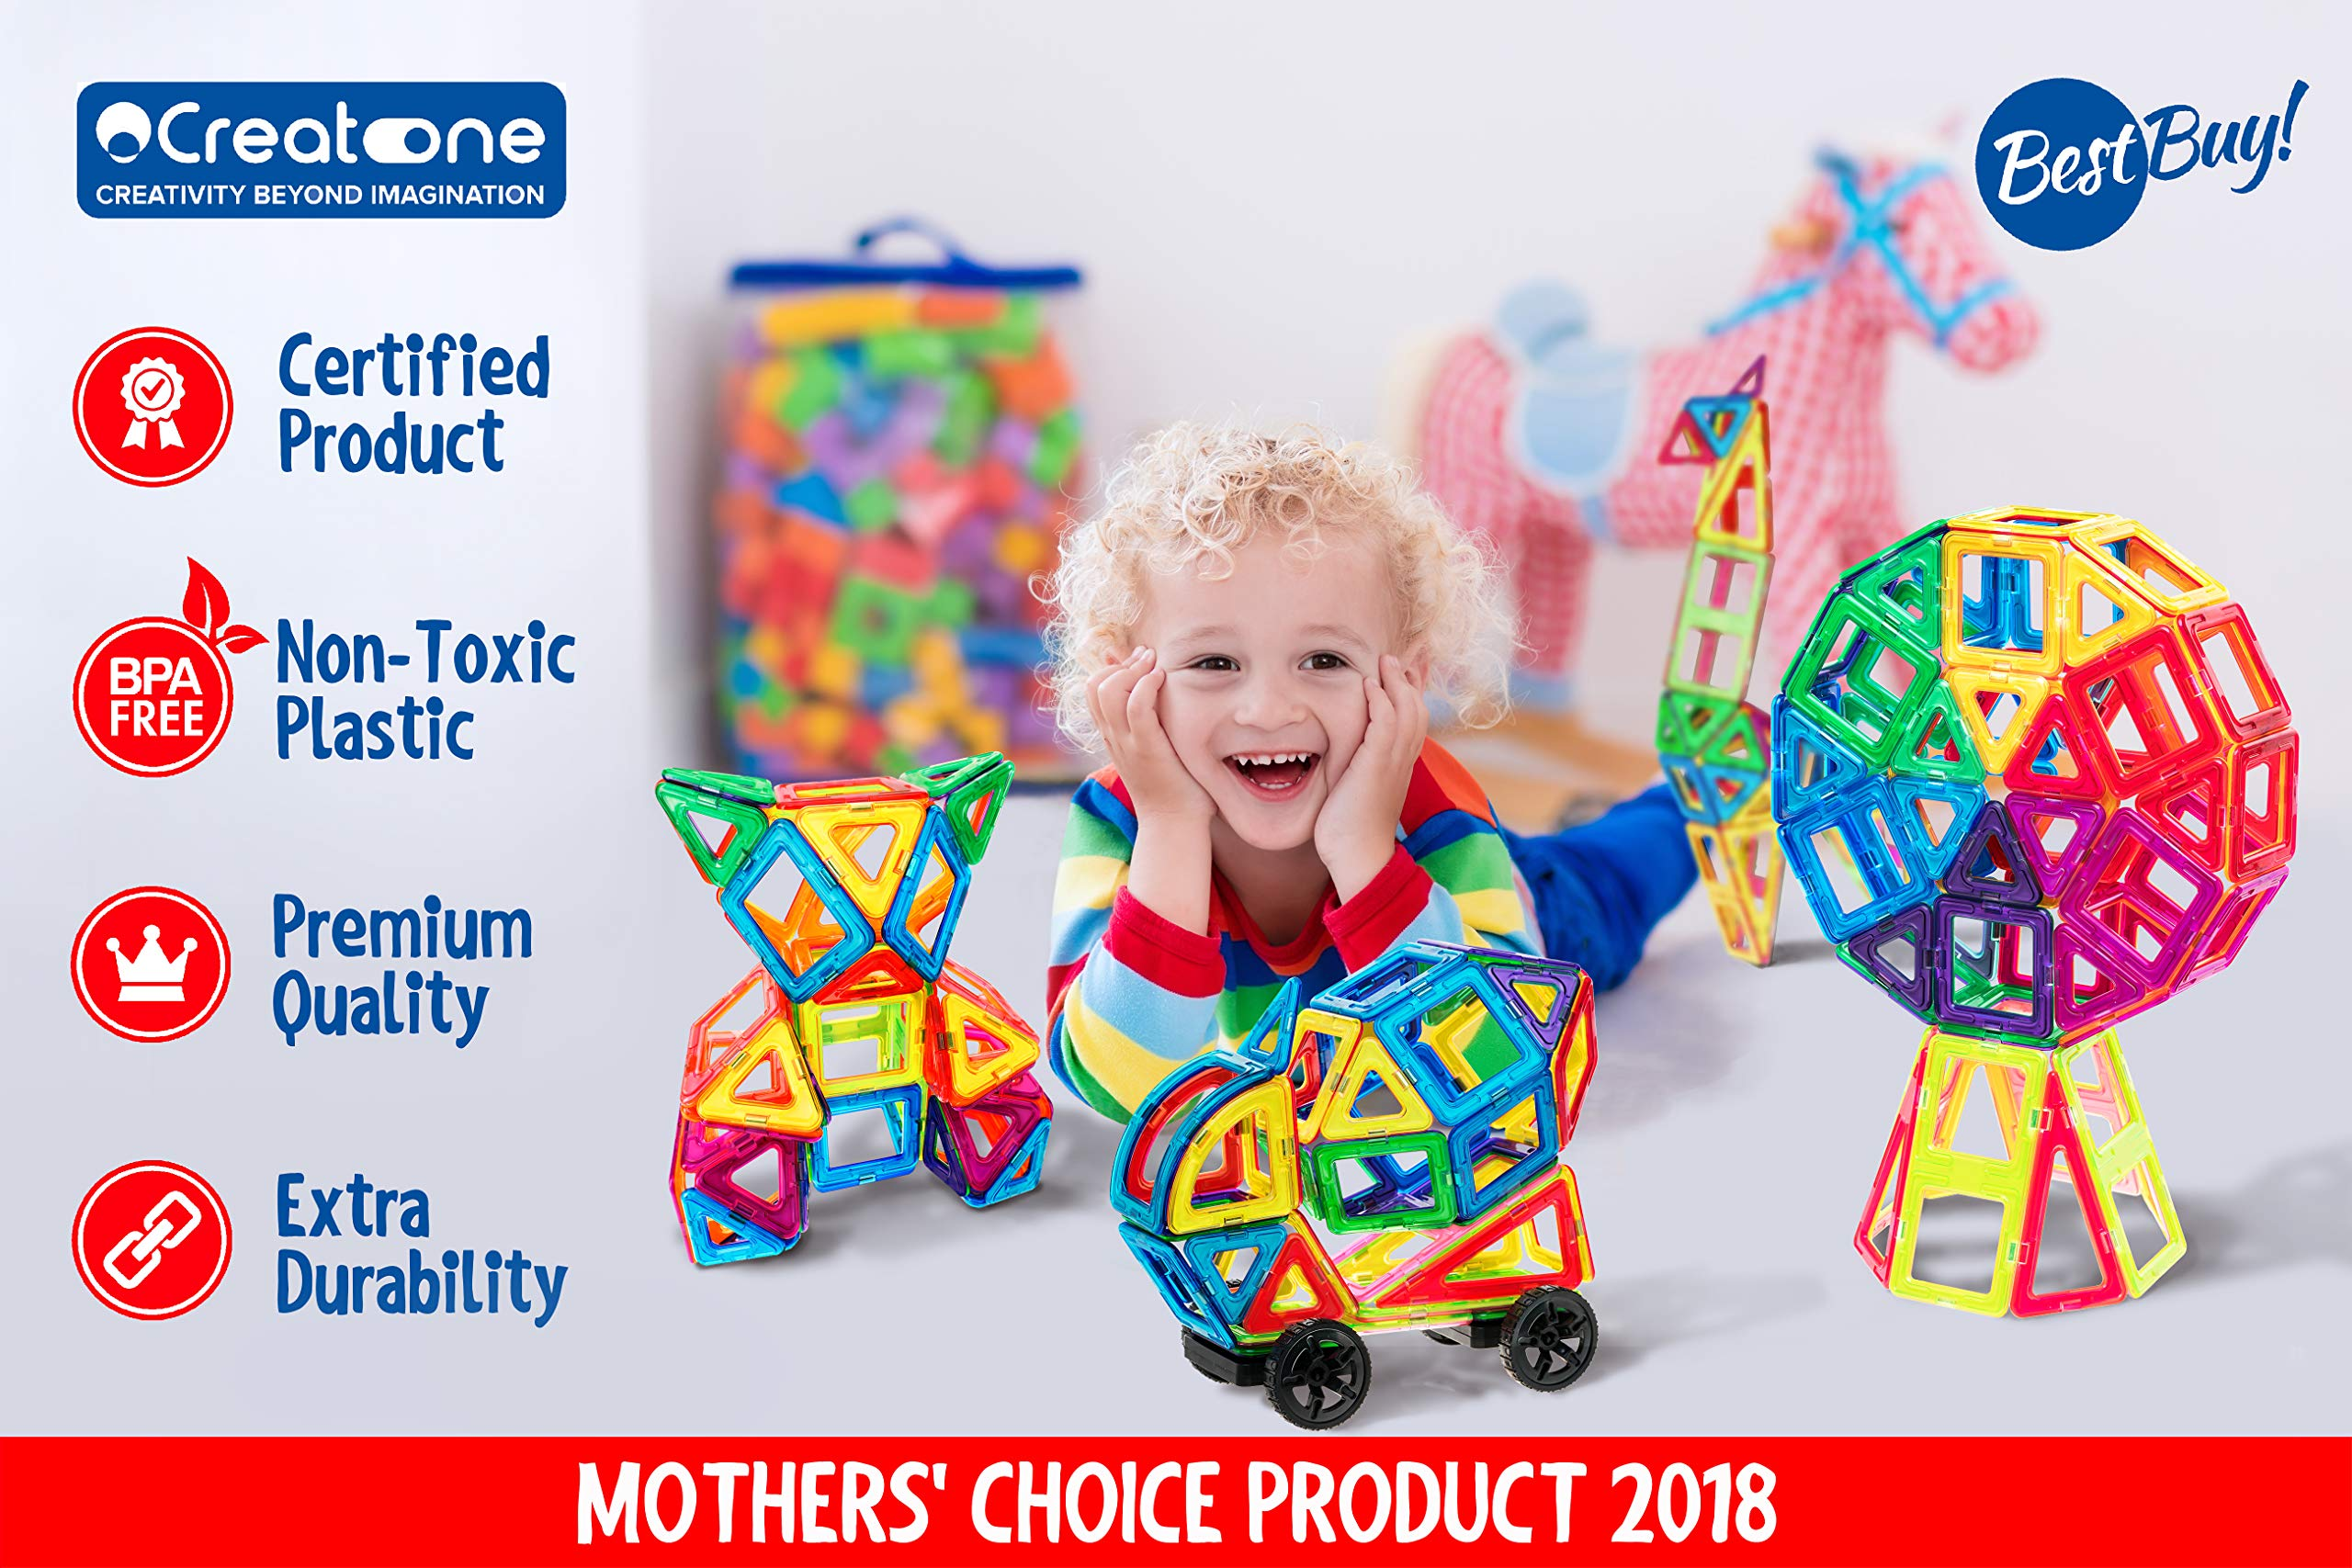 Magnetic Building Blocks for Kids – Creatone Advanced 112 PCS Ultra Strong 3D Set – Creativity, Imagination, Concentration, Hand-to-Eye and Motor Skills Stimulating and Developing Magnet Tiles by Creatone (Image #2)